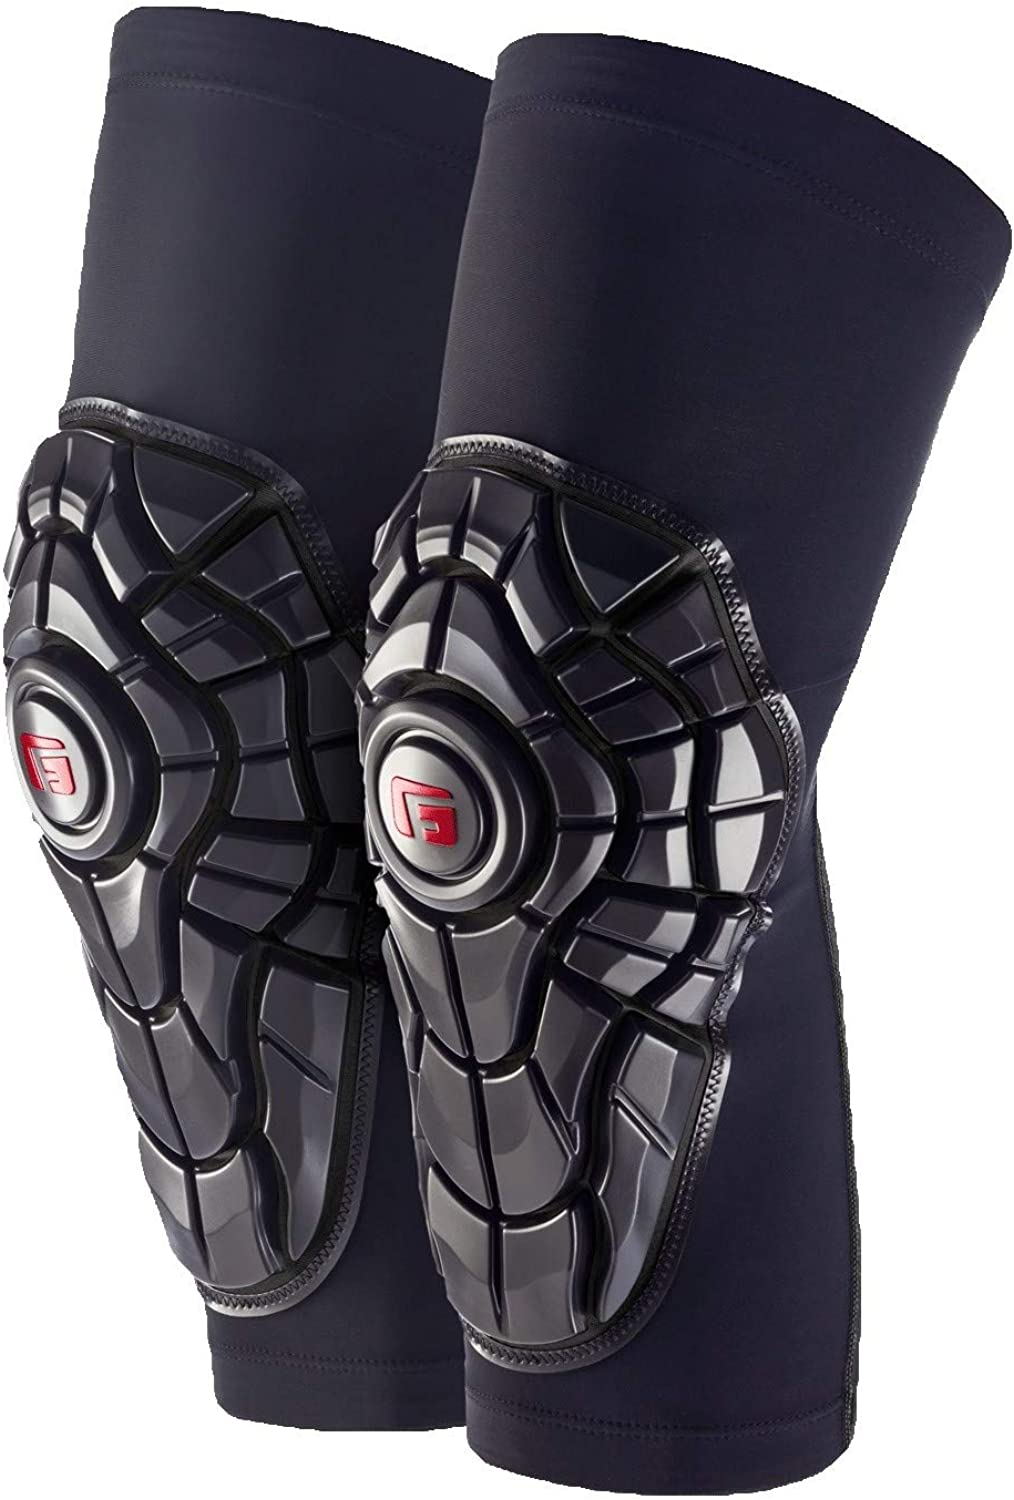 G-Form Mens Elite Knee Pad